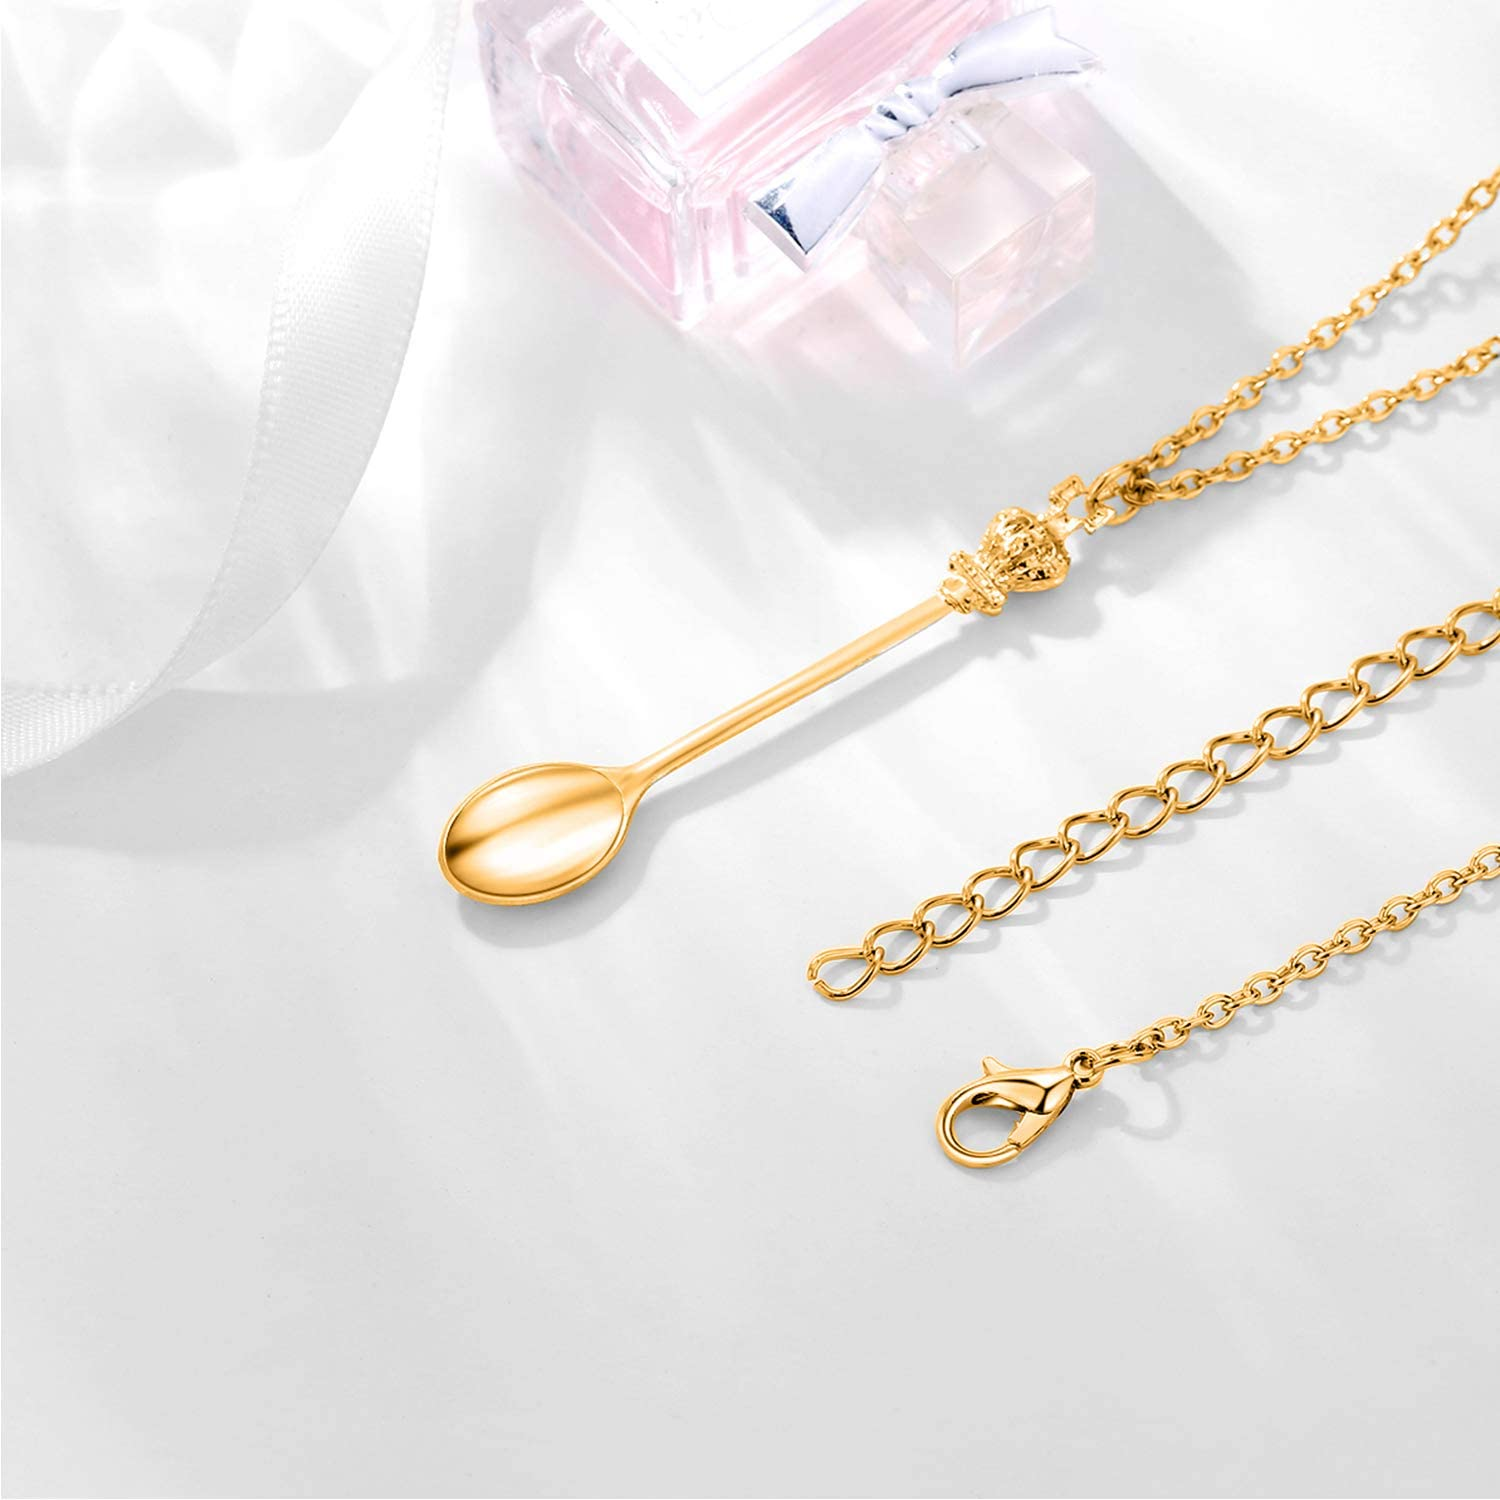 EVBEA Spoon Necklace Adjustable Mini Tea Spoon Pendant Spoon Necklace Chain Women Girls with Jewelry Gifts Box